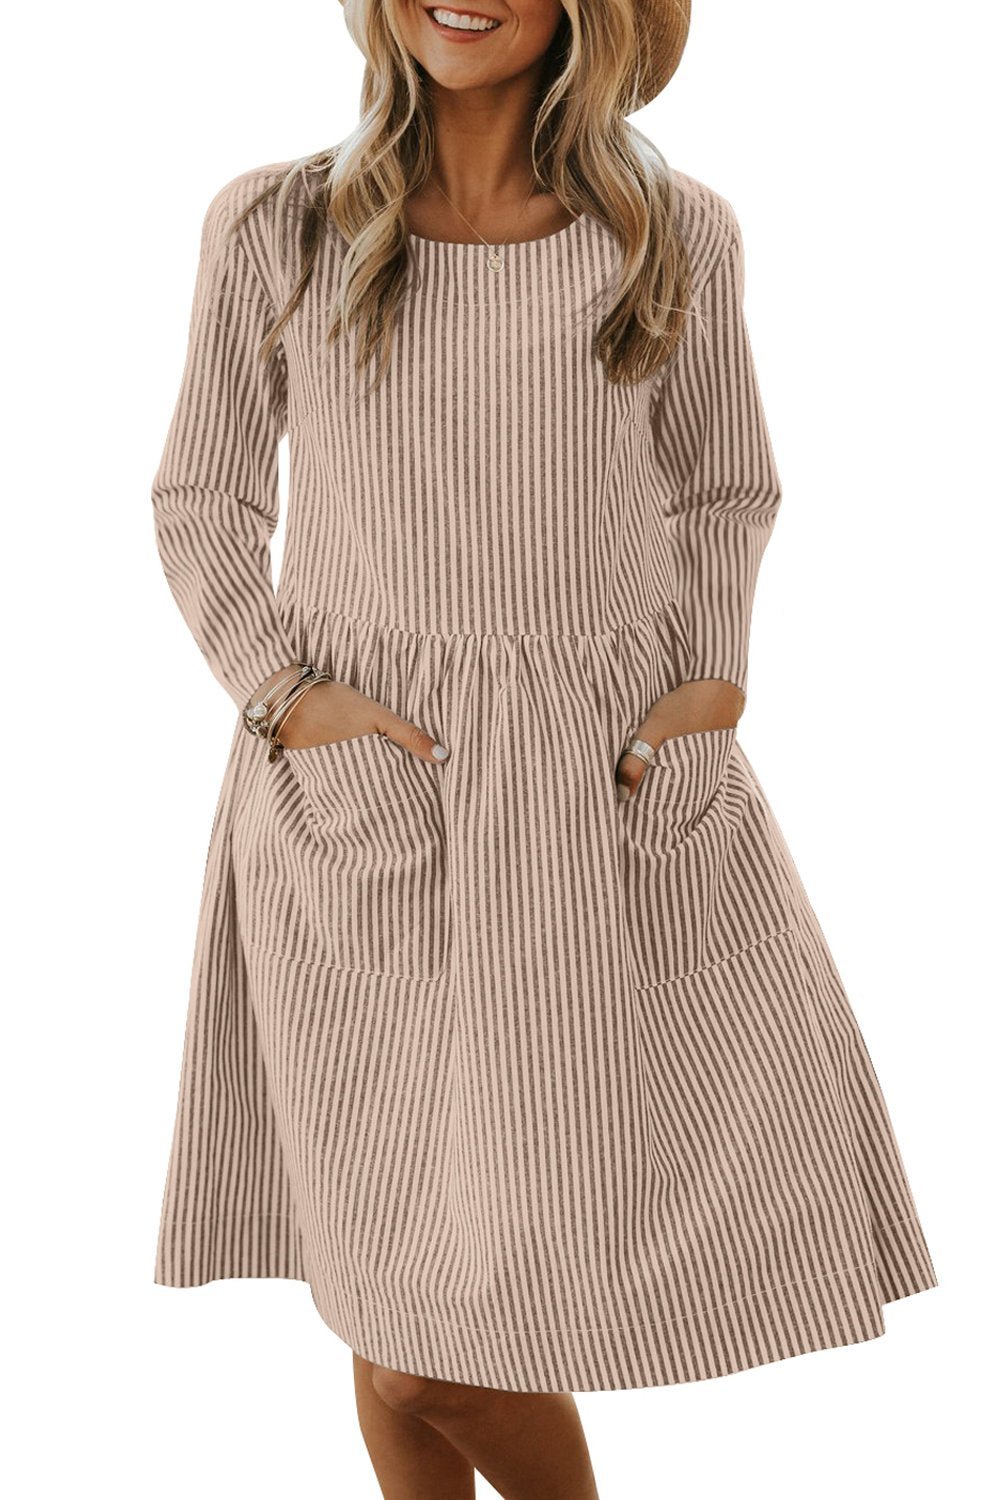 Apricot Pinstriped Long Sleeve Casual Pocket Dress - Winter Haven Co